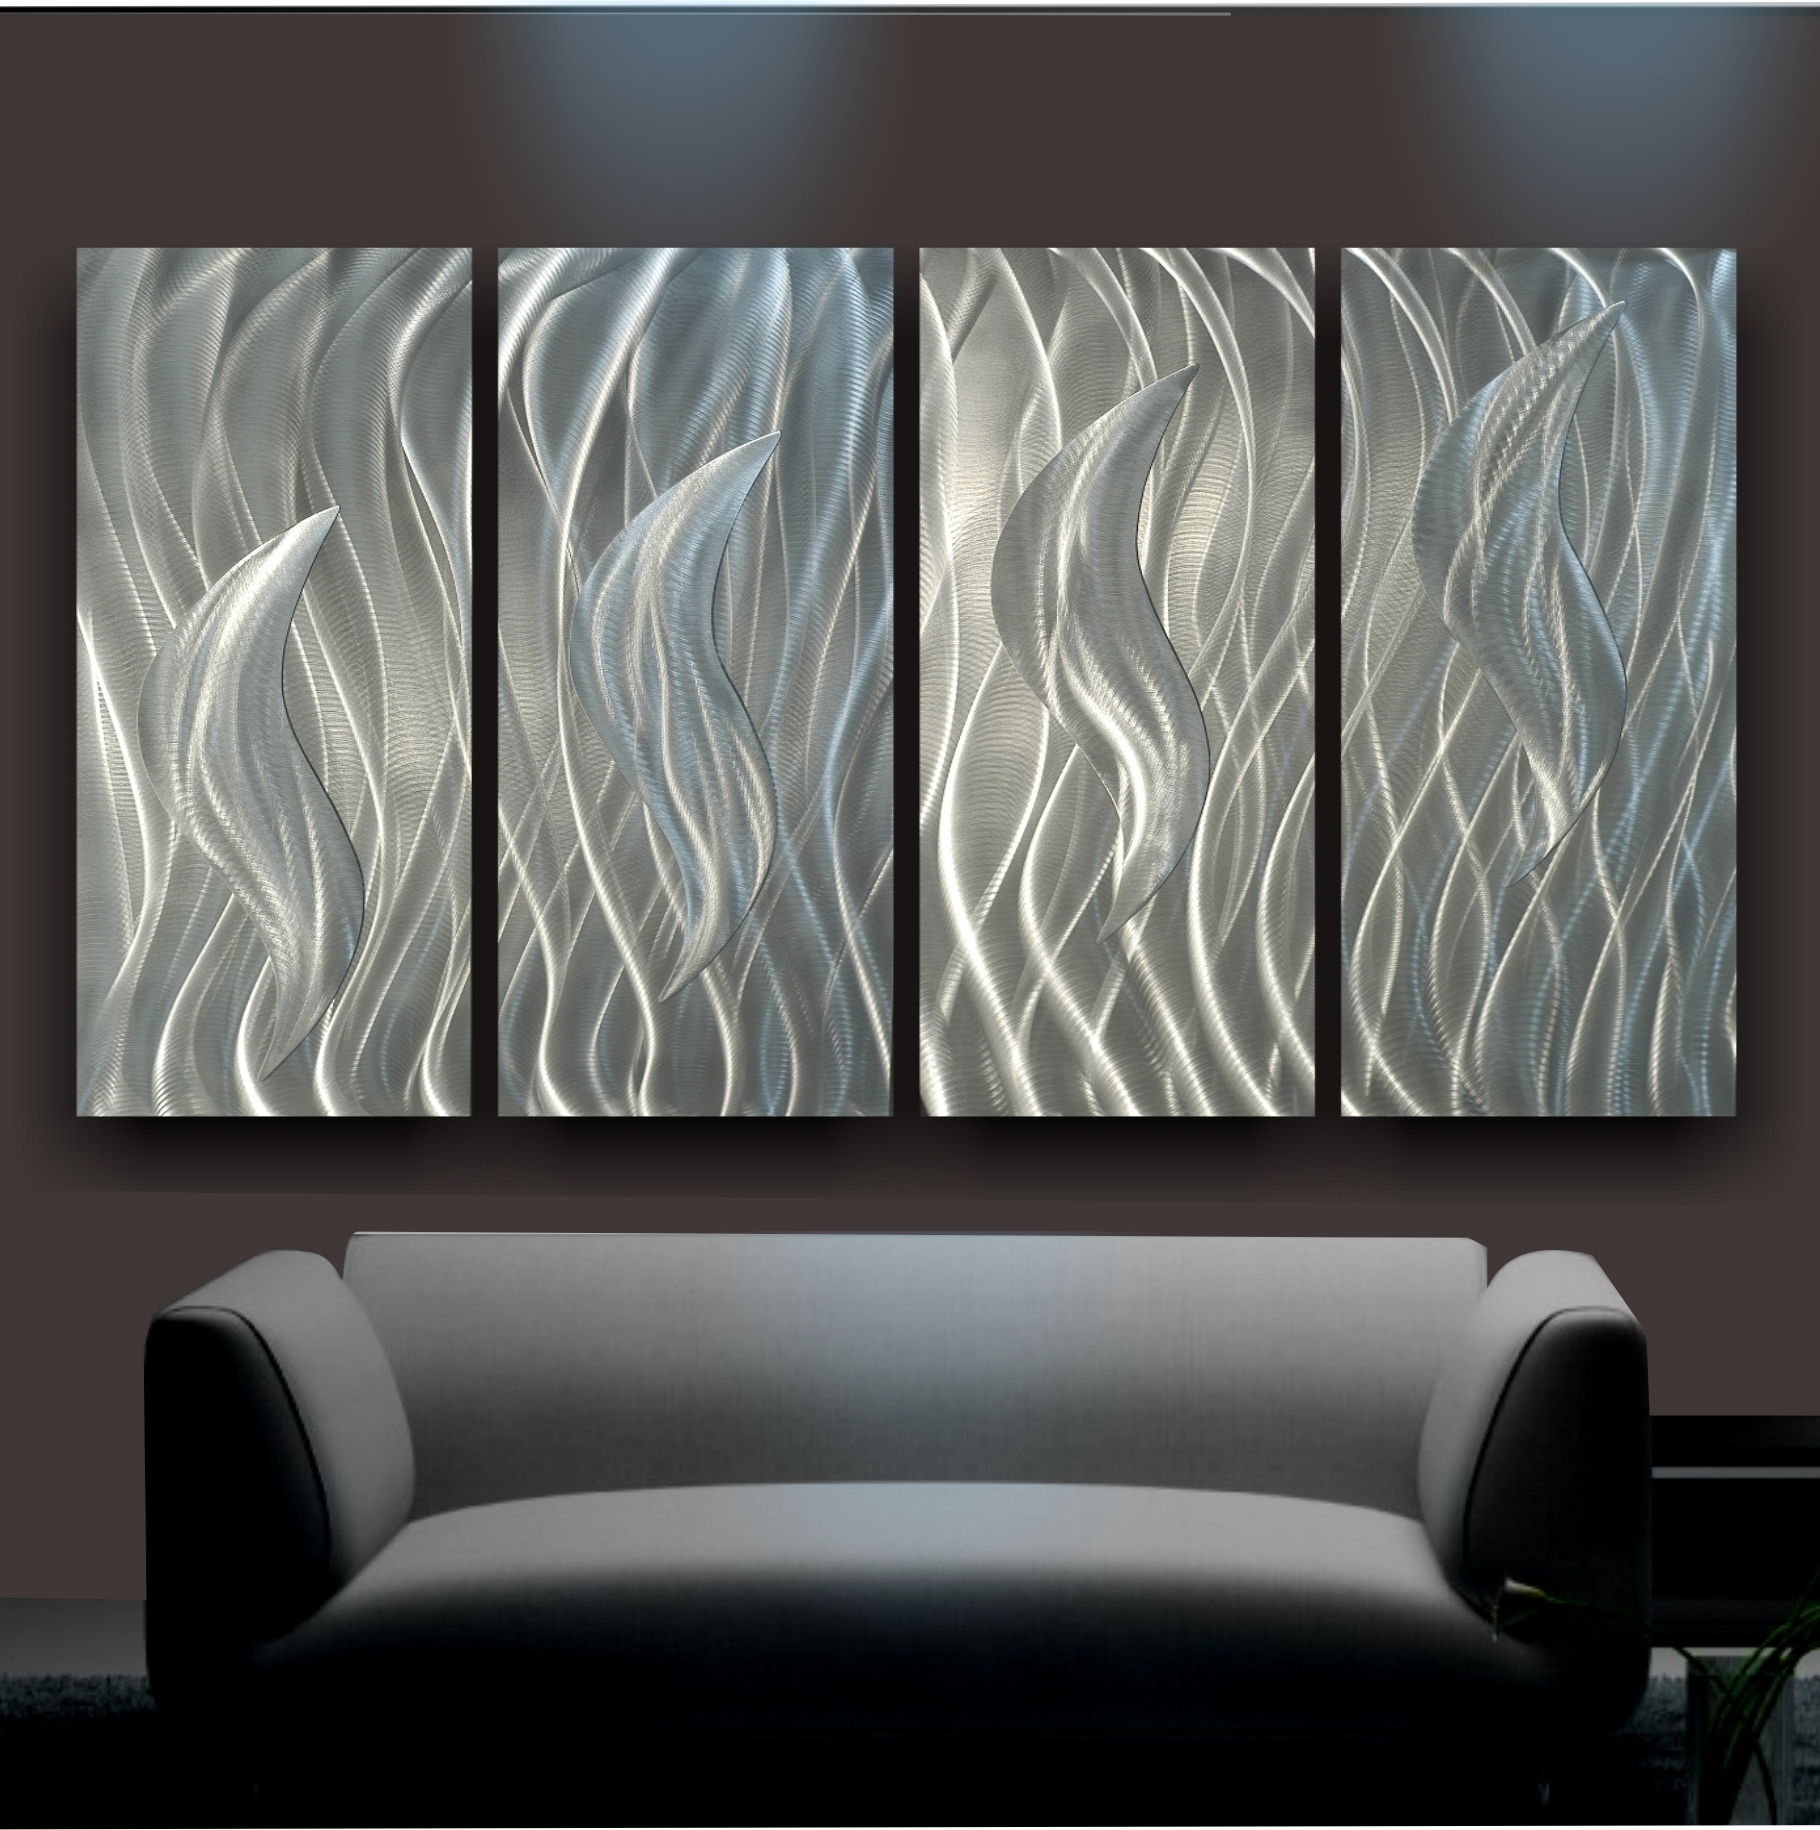 Steel Wall Surface Fine Art Is A Contemporary Sort Of Art Work With Well Known Black Silver Wall Art (Gallery 13 of 15)